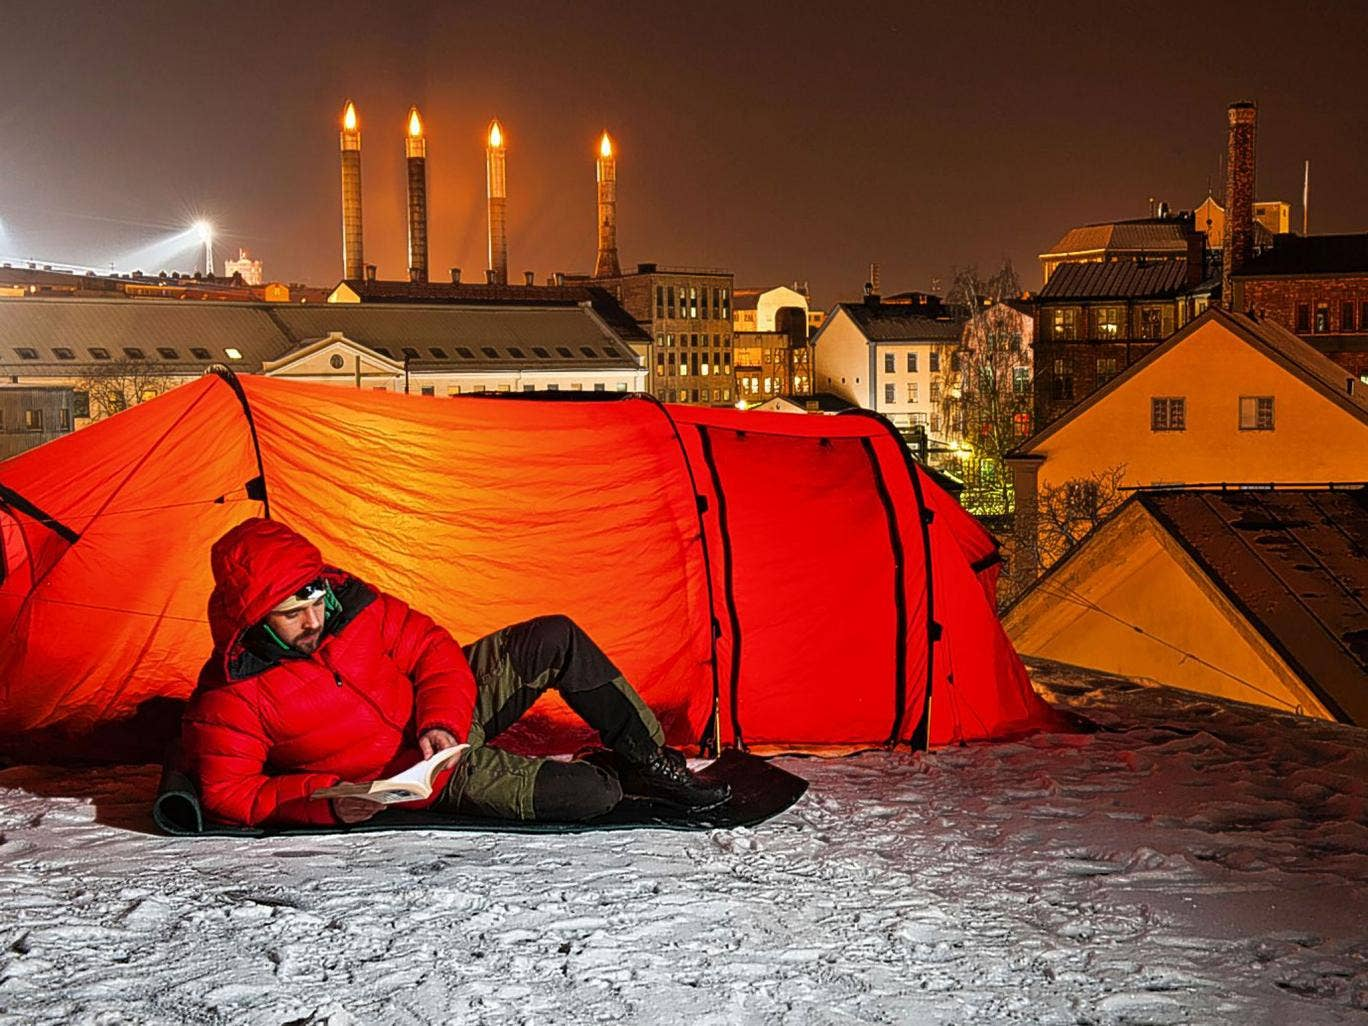 City sleepers: urban camping is gaining a foothold in cities